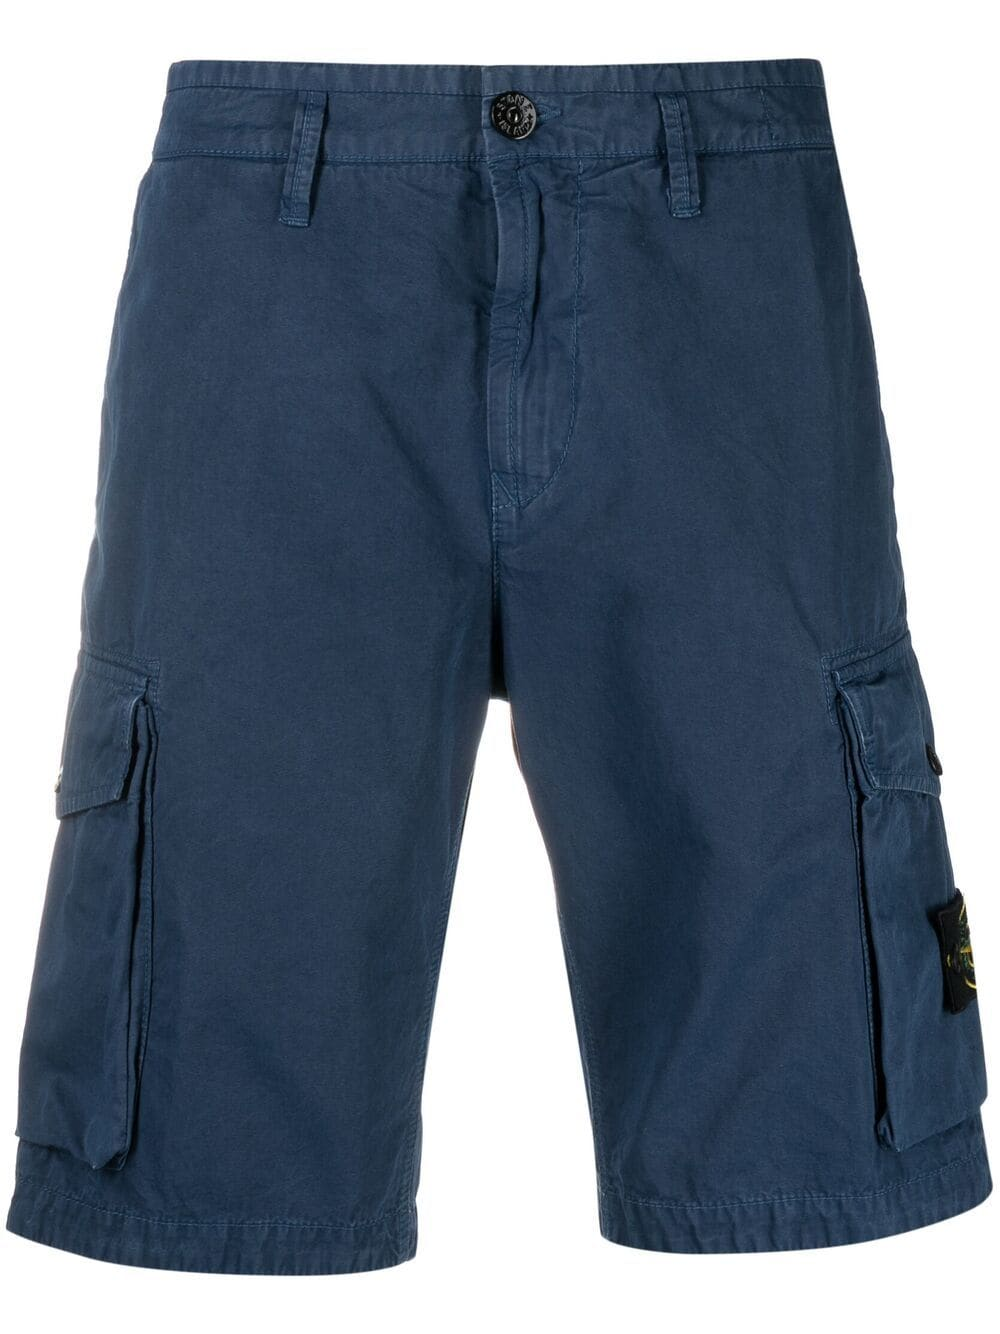 Blue cotton cargo shorts featuring Stone Island logo patch to the side STONE ISLAND |  | 7415L07WAV0124